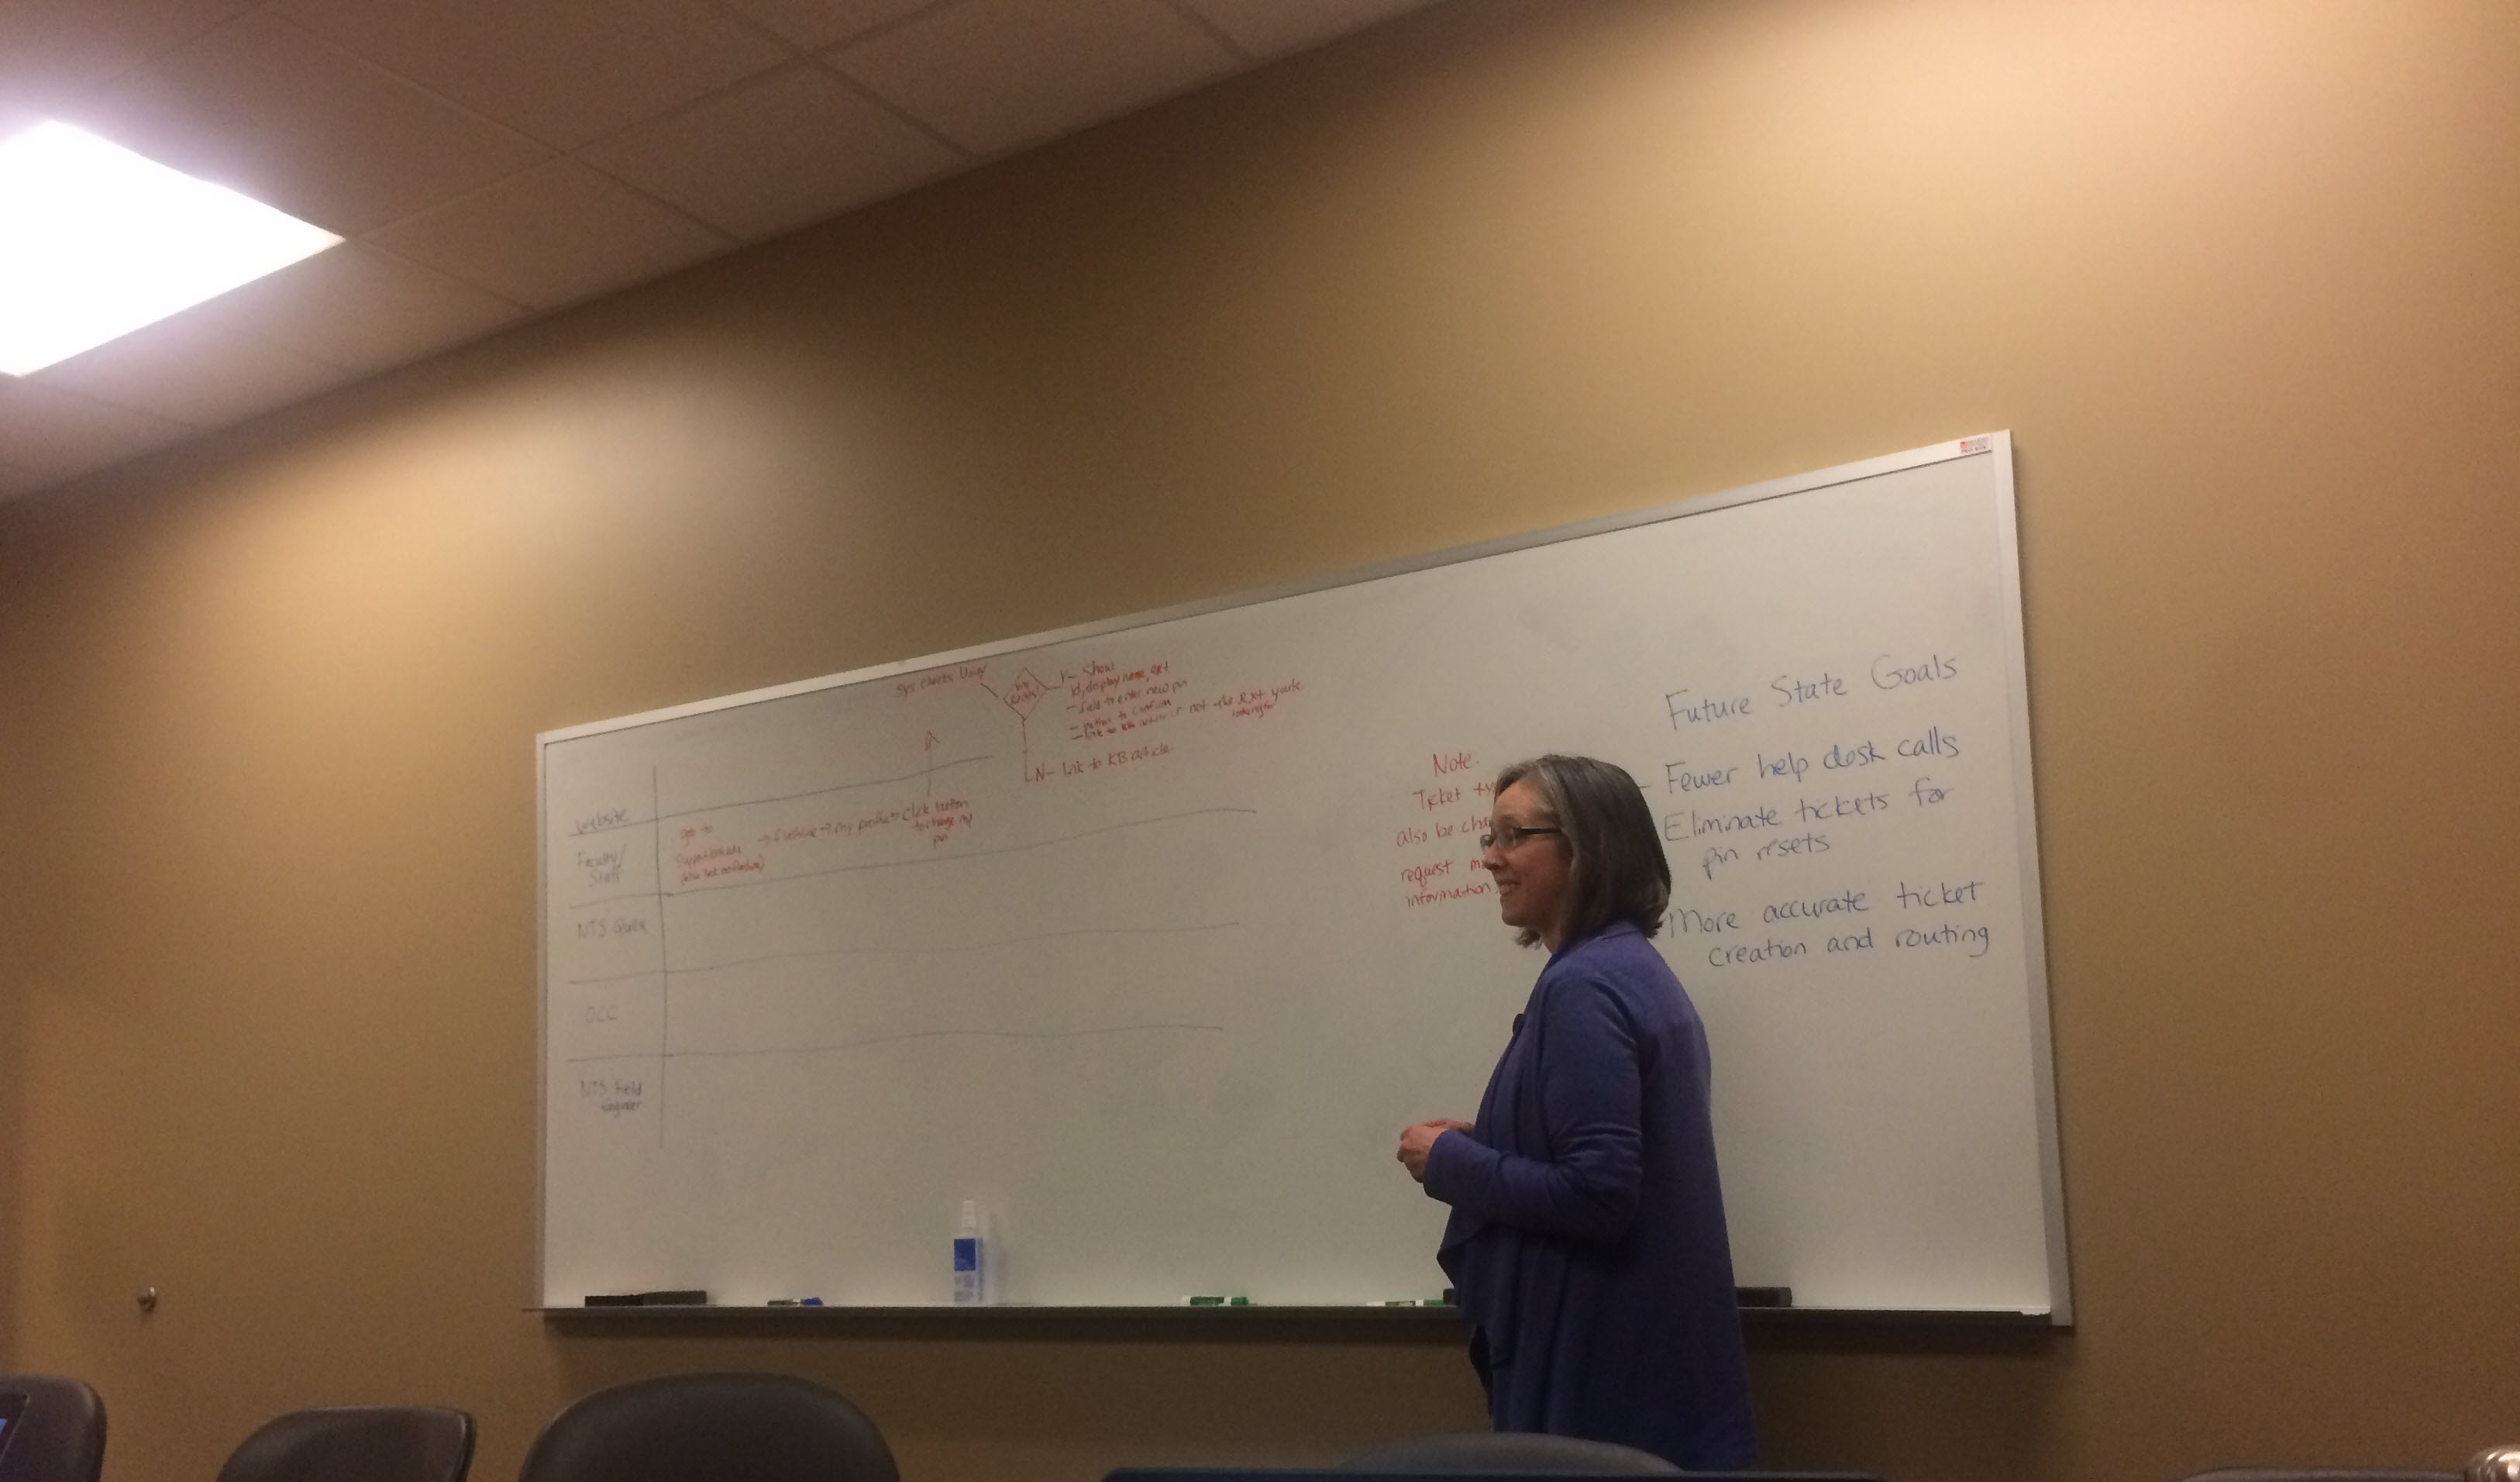 Instructor at white board